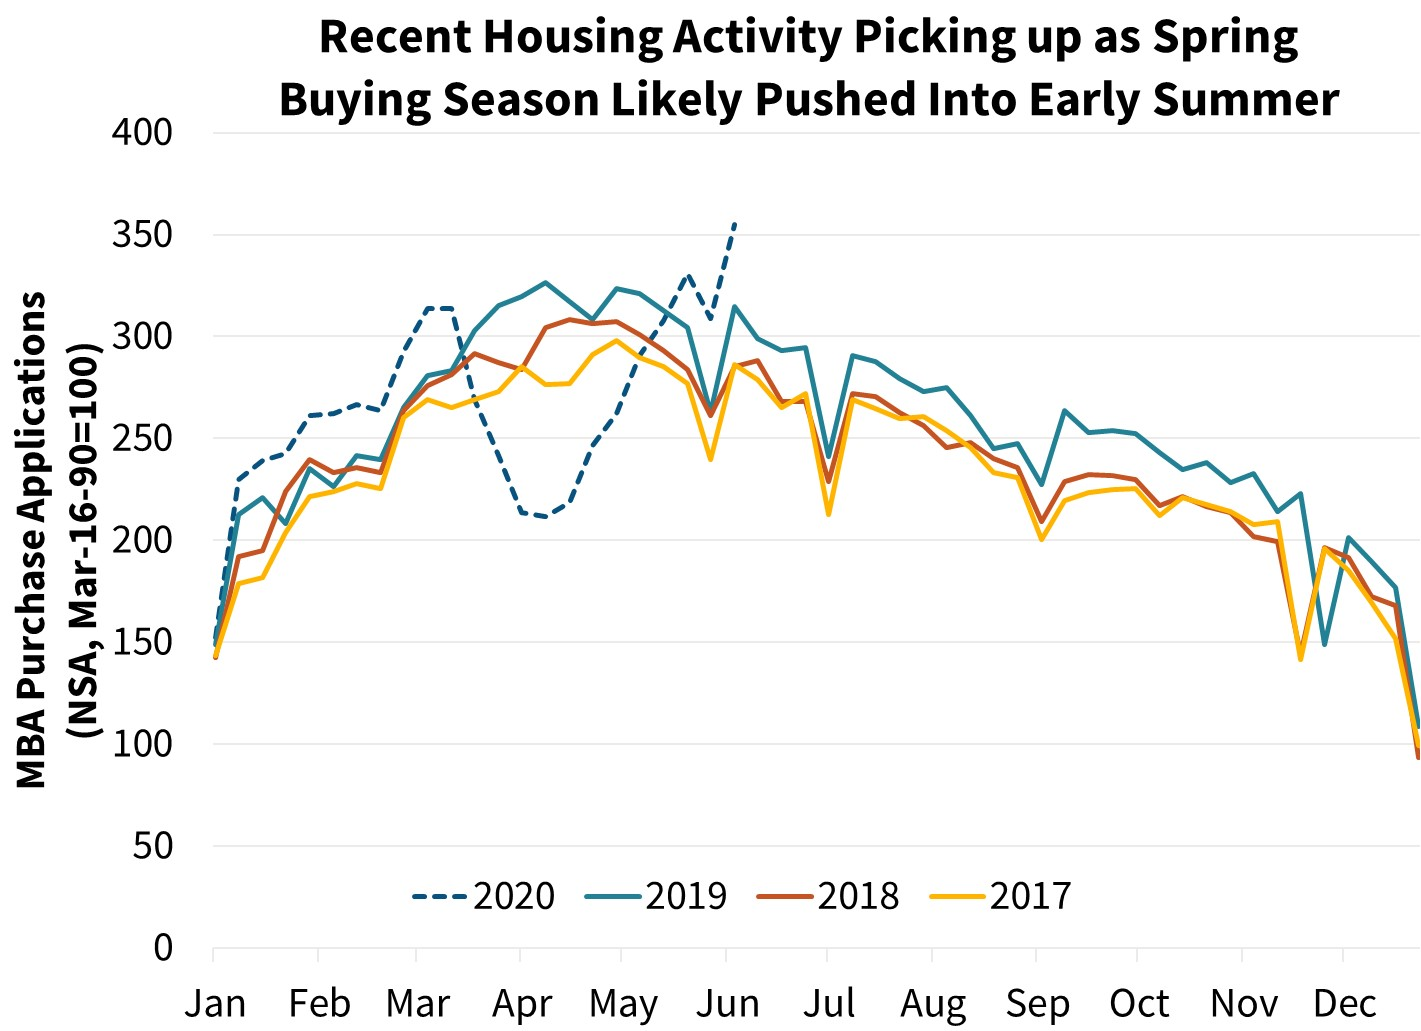 Recent Housing Activity Picking up as Spring Buying Season Likely Pushed Into Early Summer